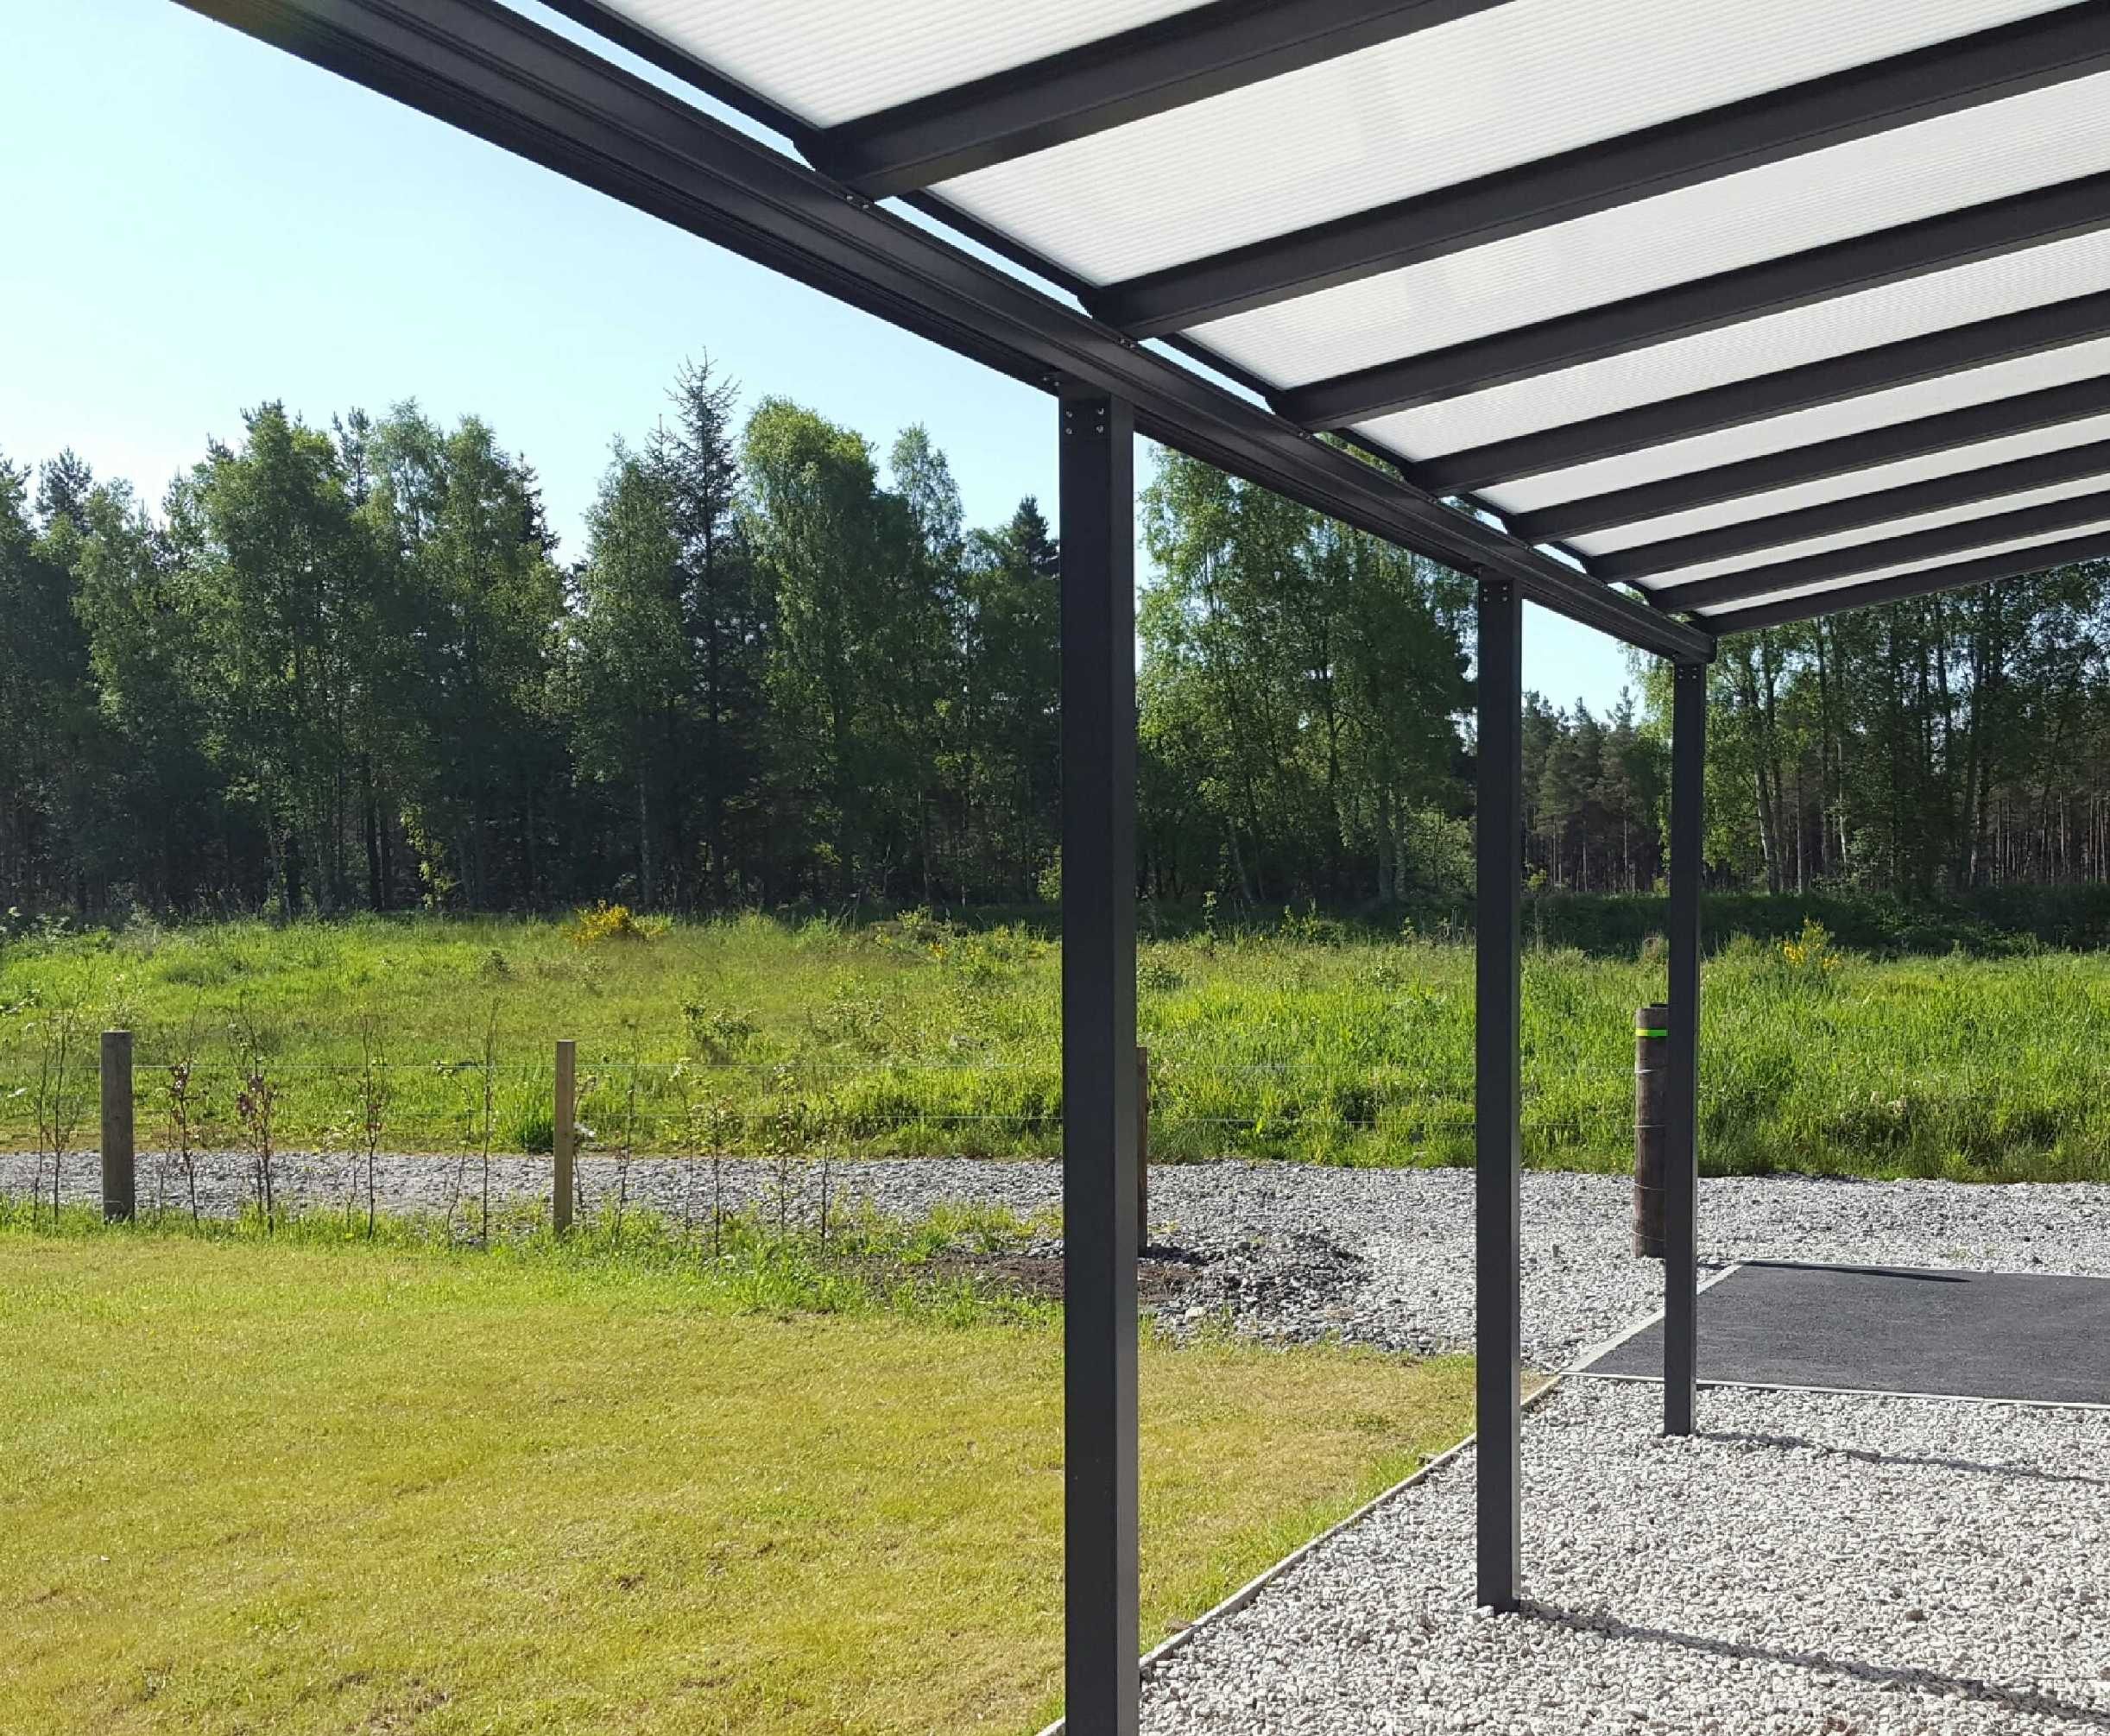 Omega Smart Lean-To Canopy, Anthracite Grey, 16mm Polycarbonate Glazing - 2.1m (W) x 4.0m (P), (2) Supporting Posts